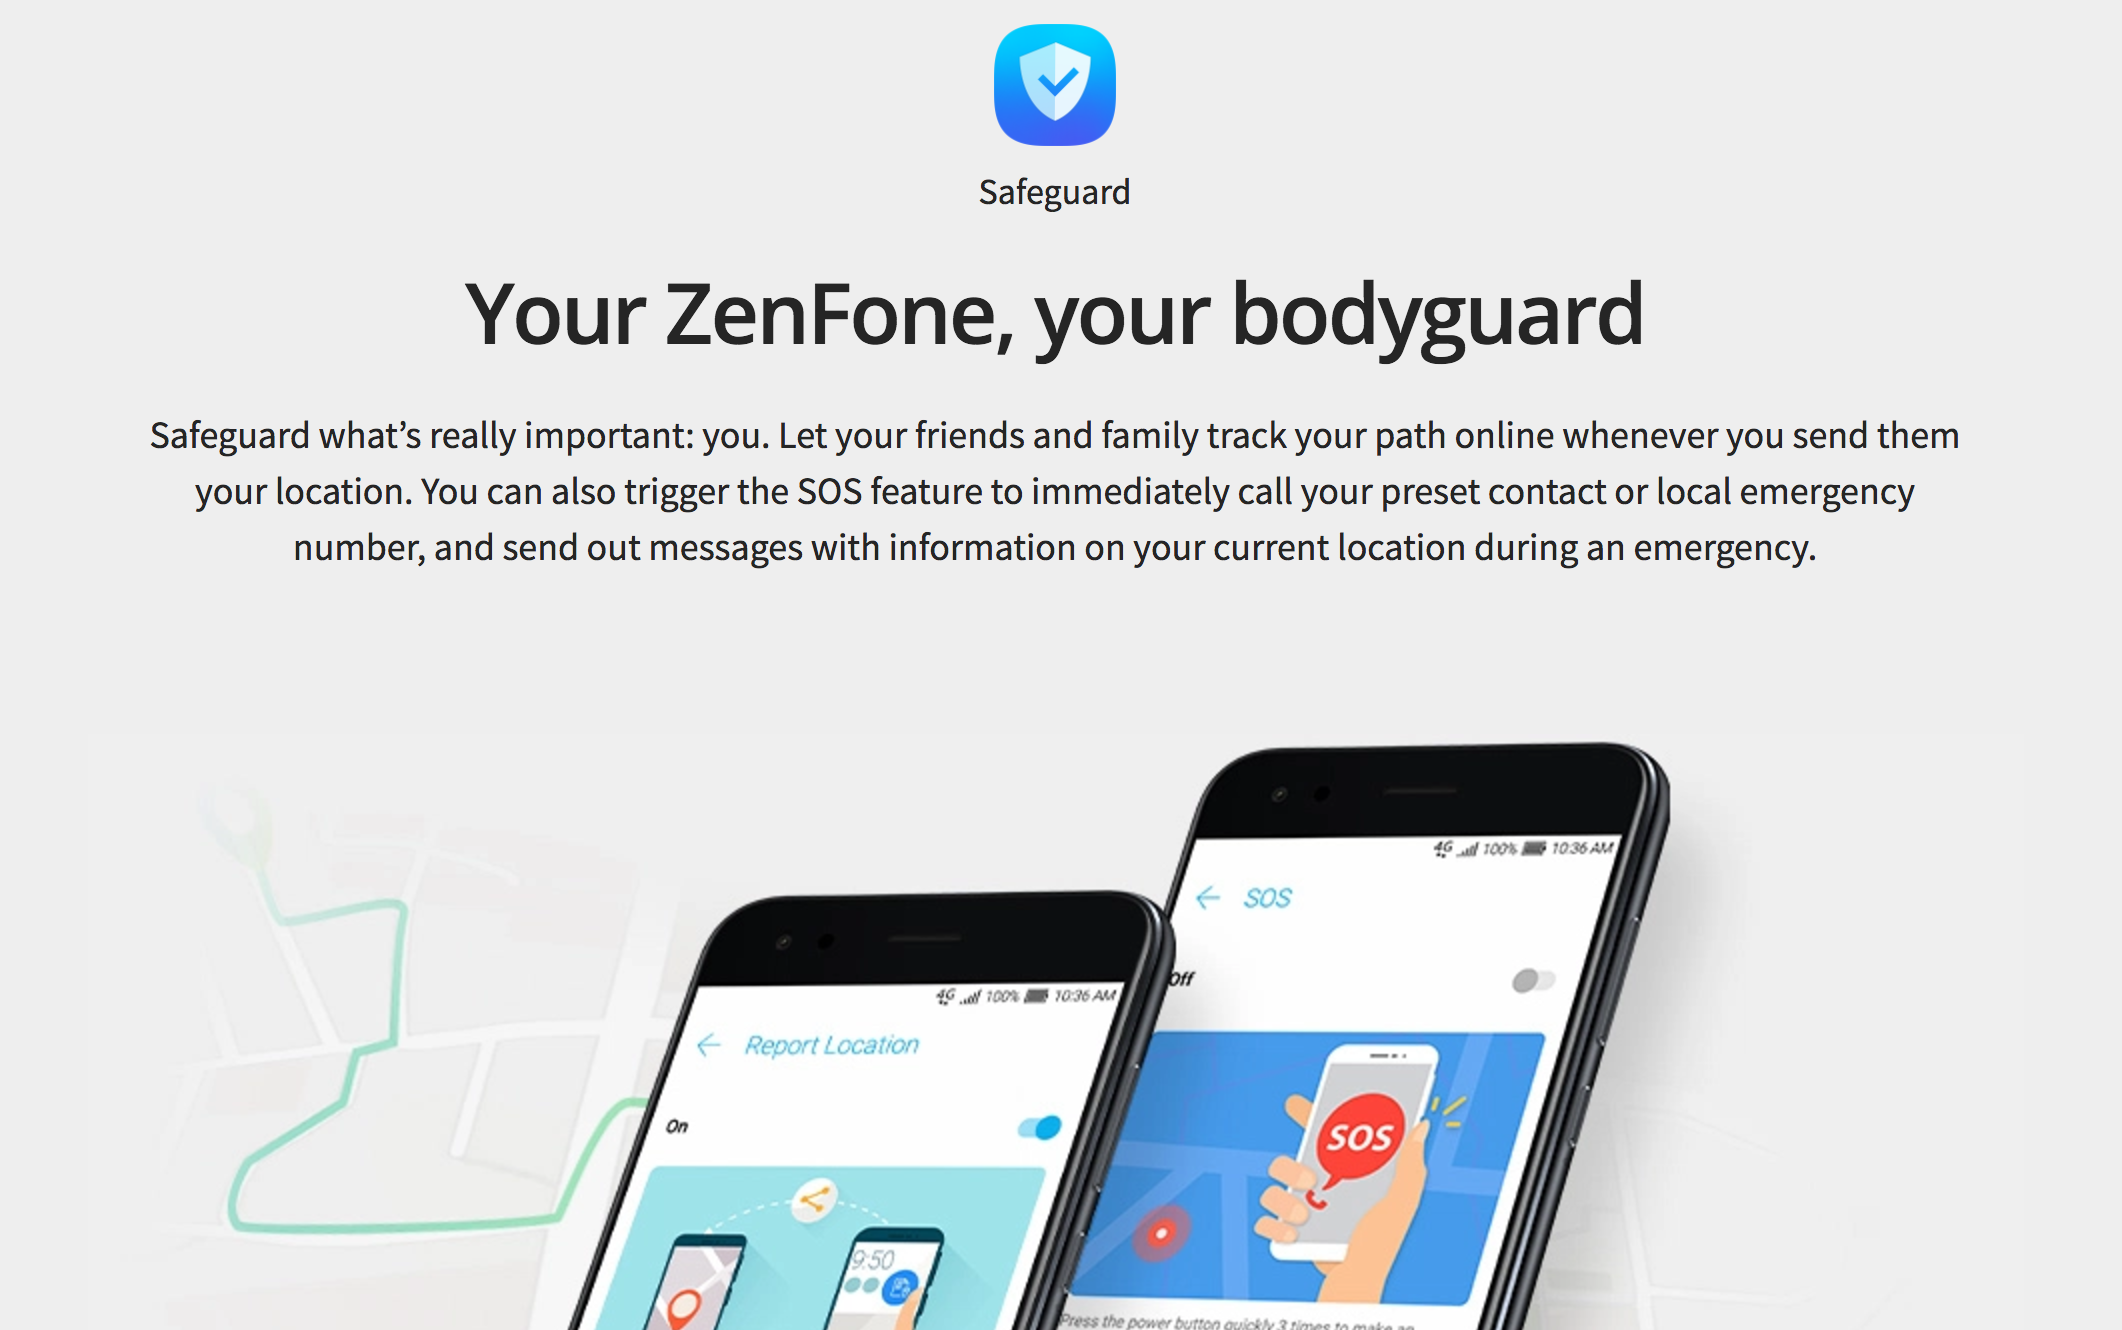 Asus releases the ZenUI 4 0 Safeguard app on the Play Store [APK